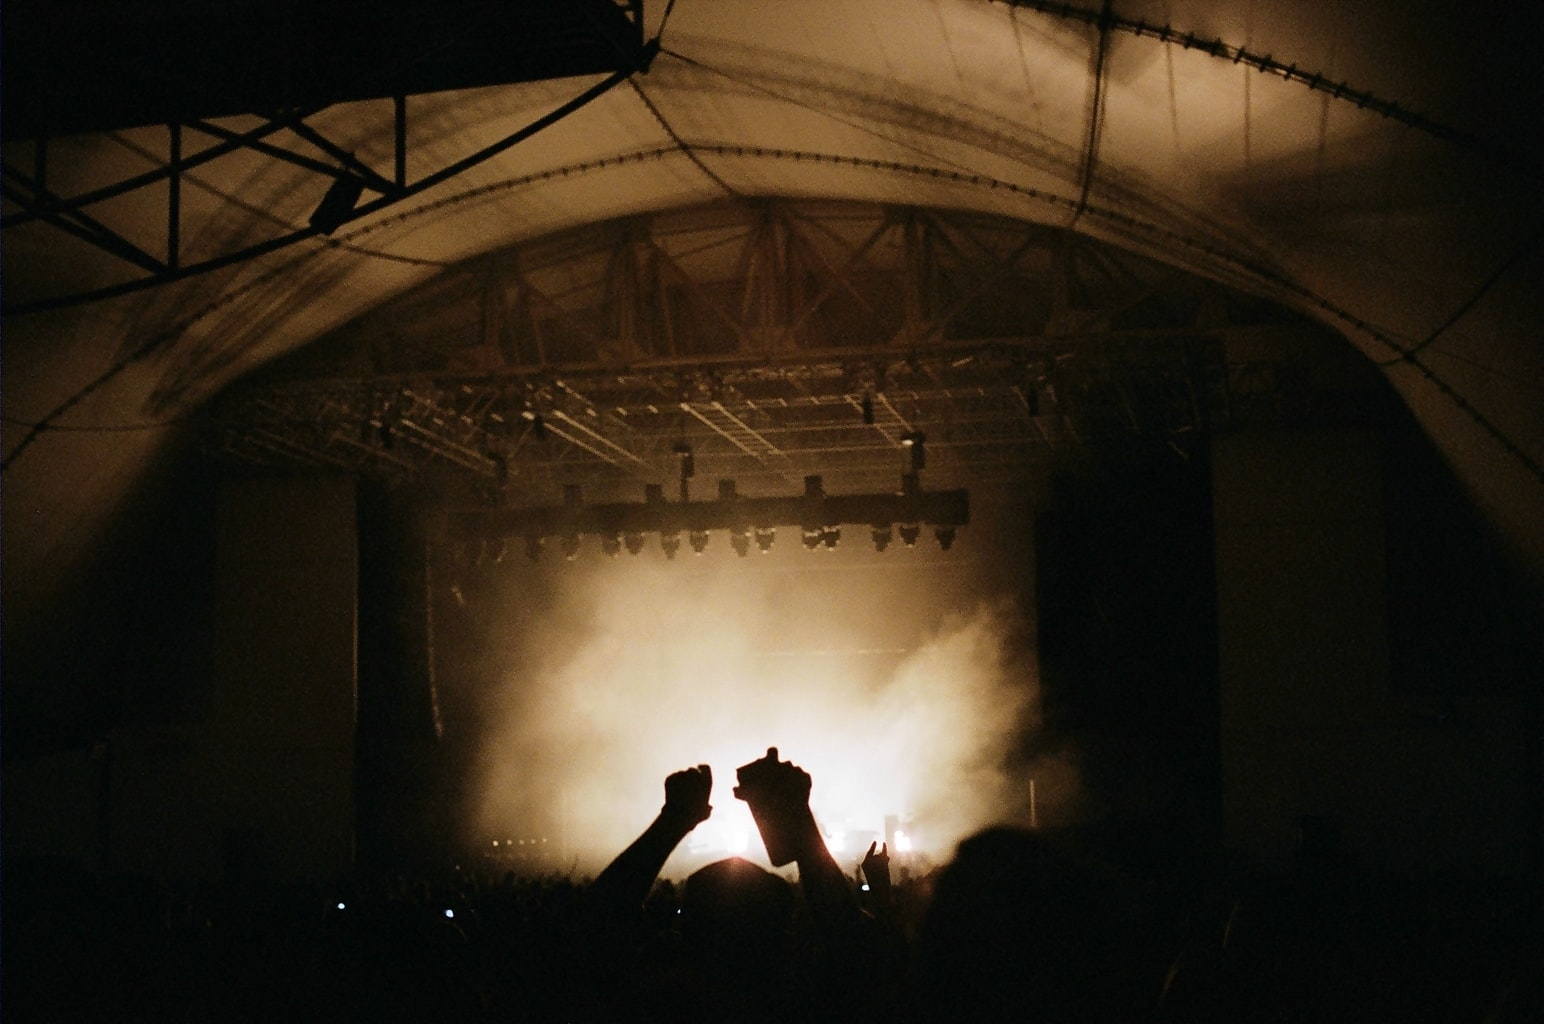 Silhouettes of the audience's hands in the air during a concert